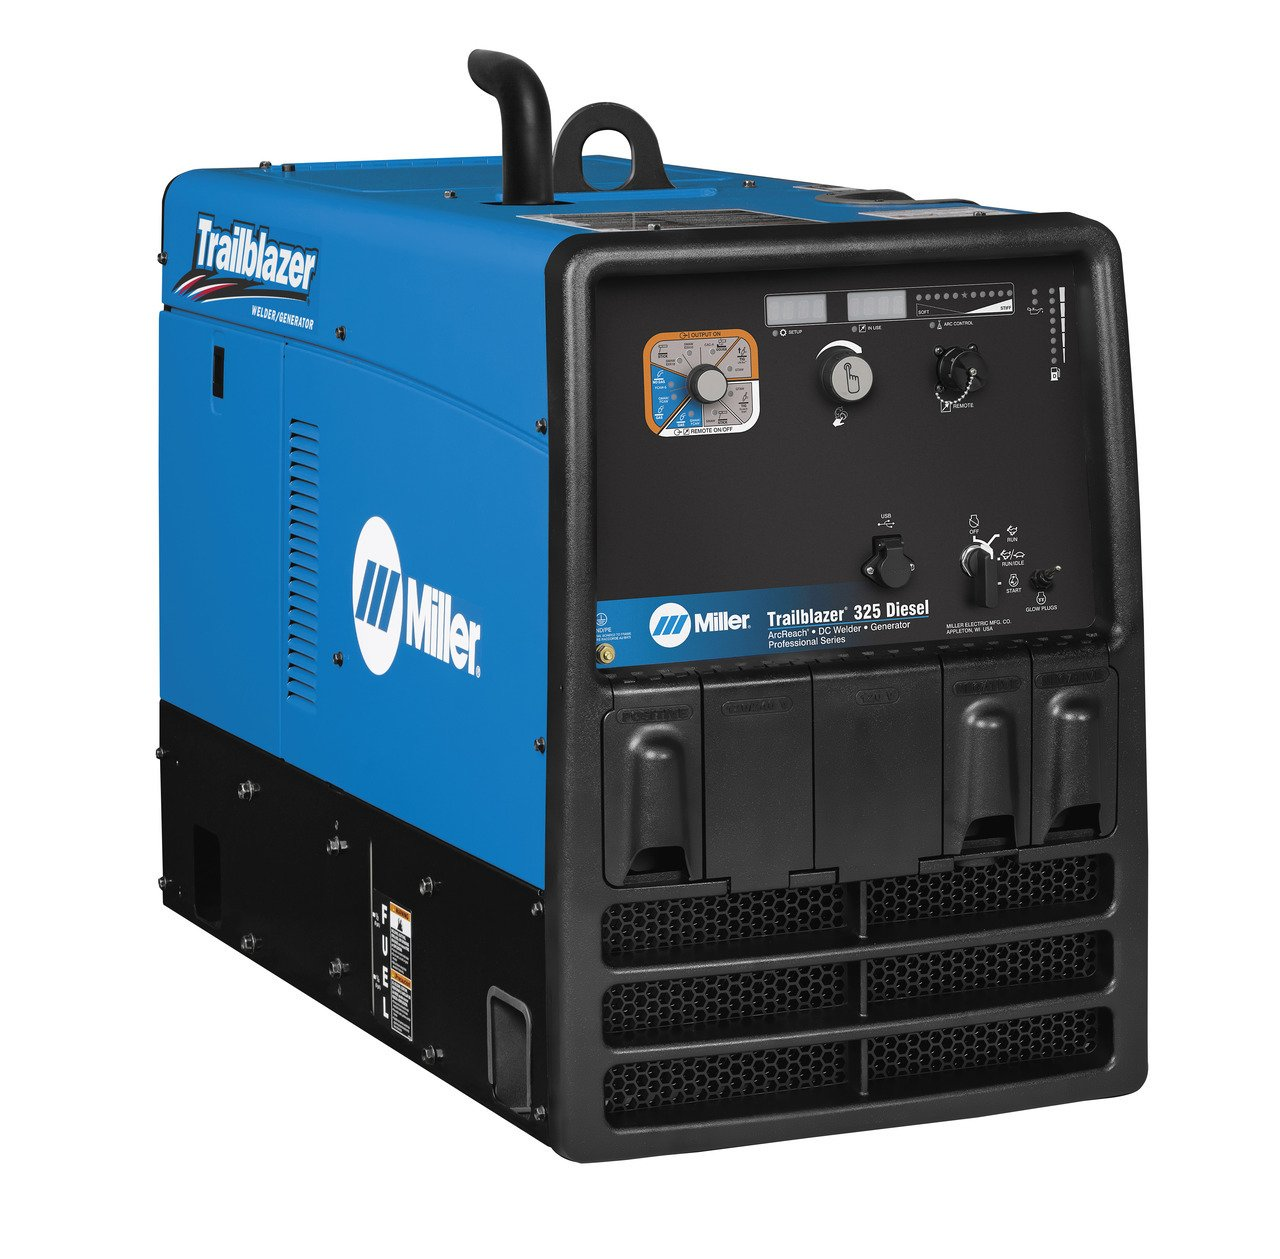 Miller Trailblazer 325 Diesel Welder w/GFCI, Excel Power & ArcReach 907755003